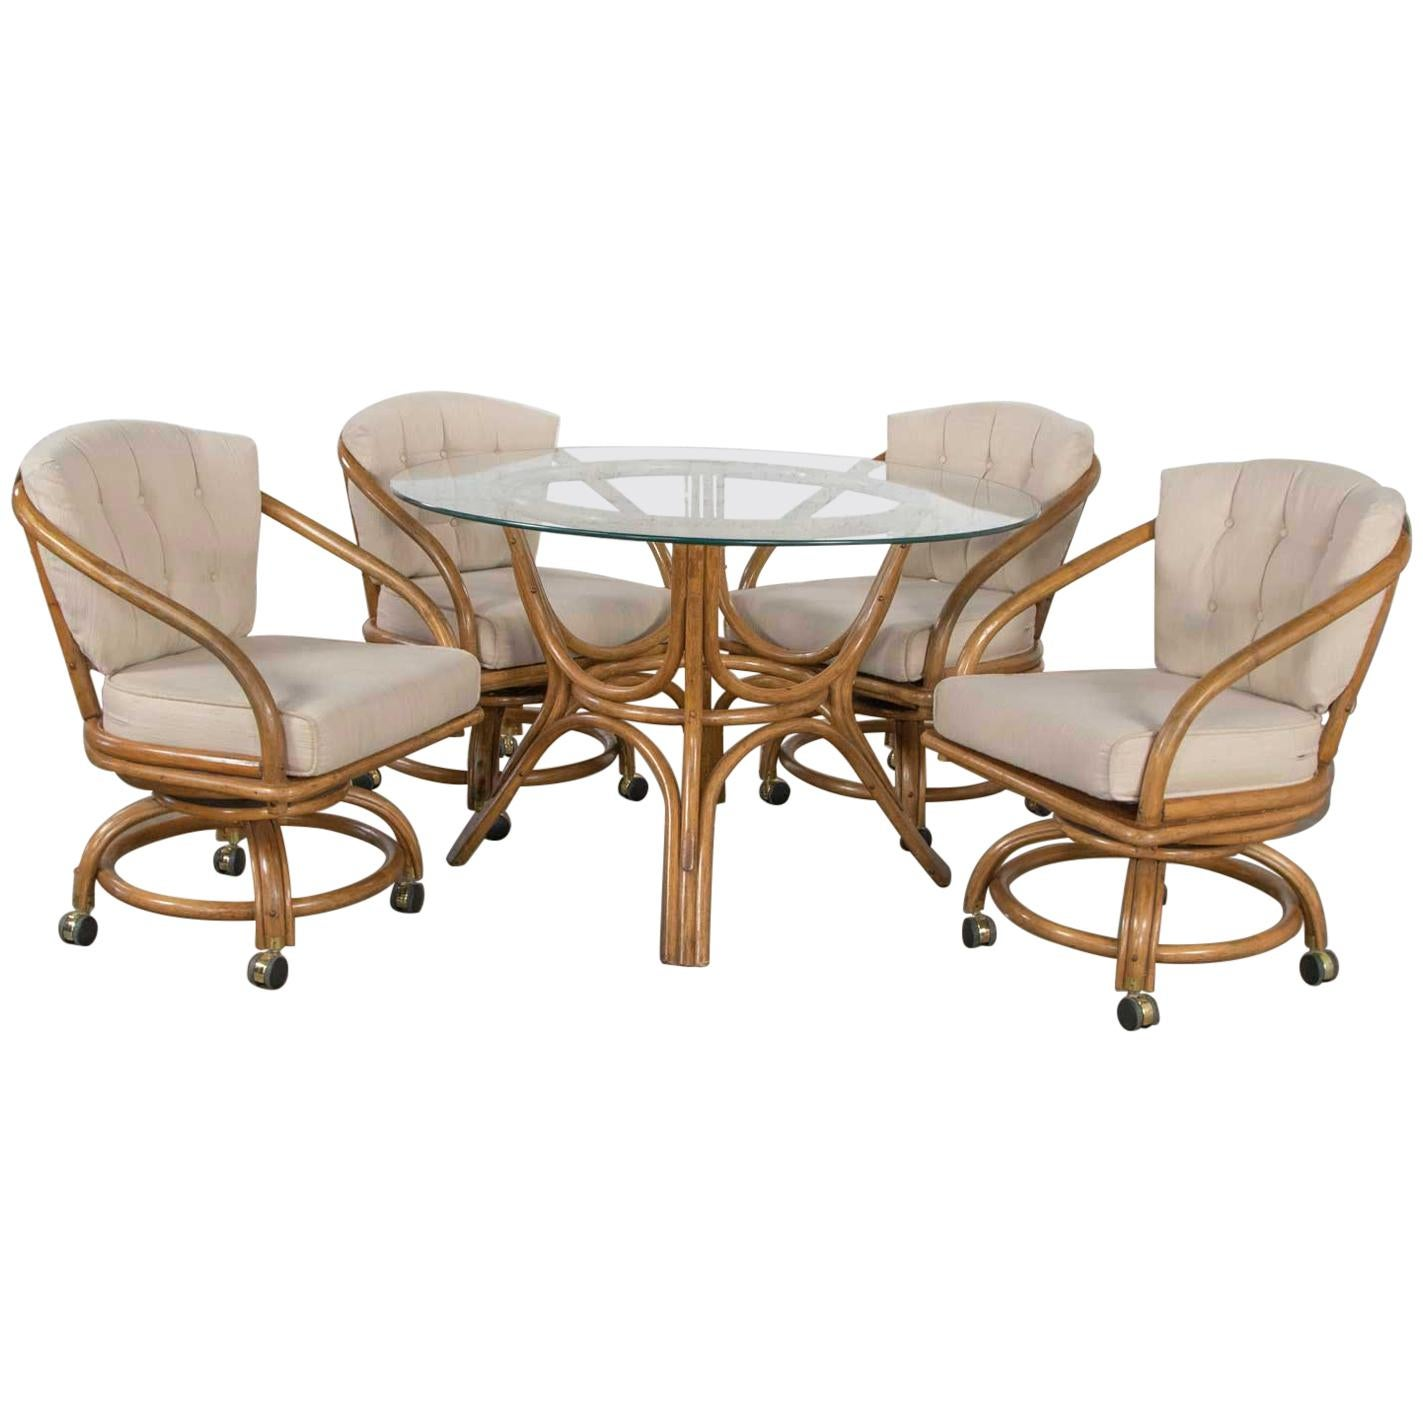 Vintage Rattan Game Table Set Round Glass Top Table and 4 Swivel Rolling Chairs